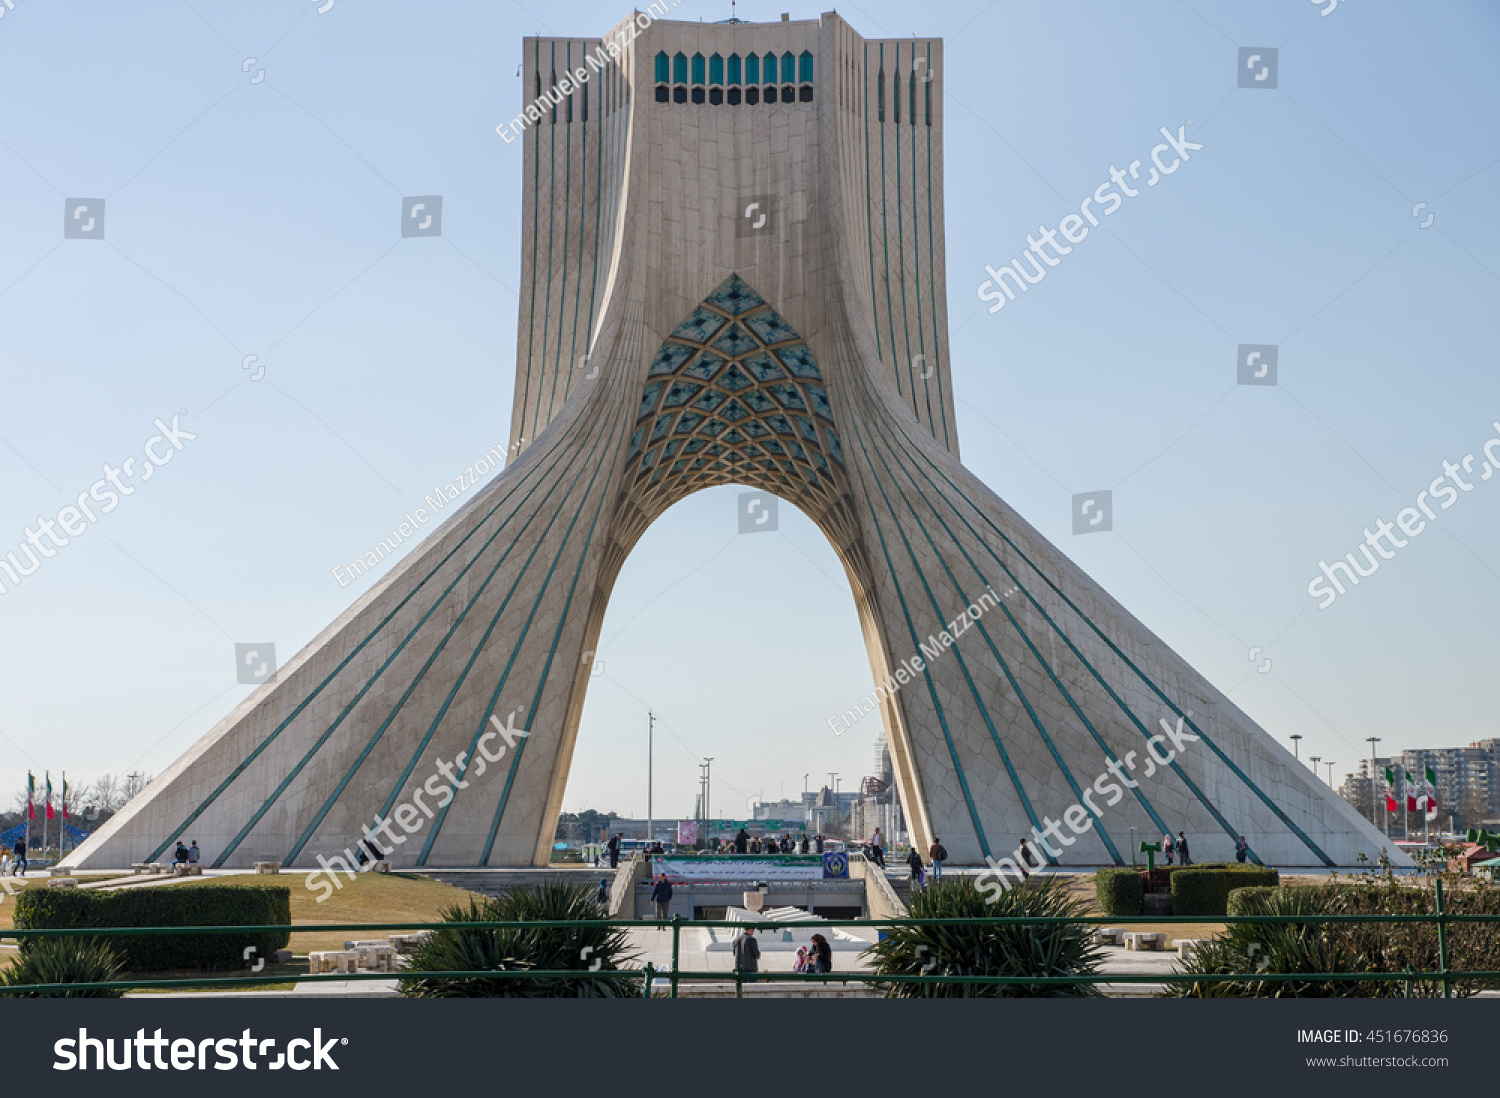 Teheran Iran February 2016 Azadi Tower Stock Photo 451676836 ...